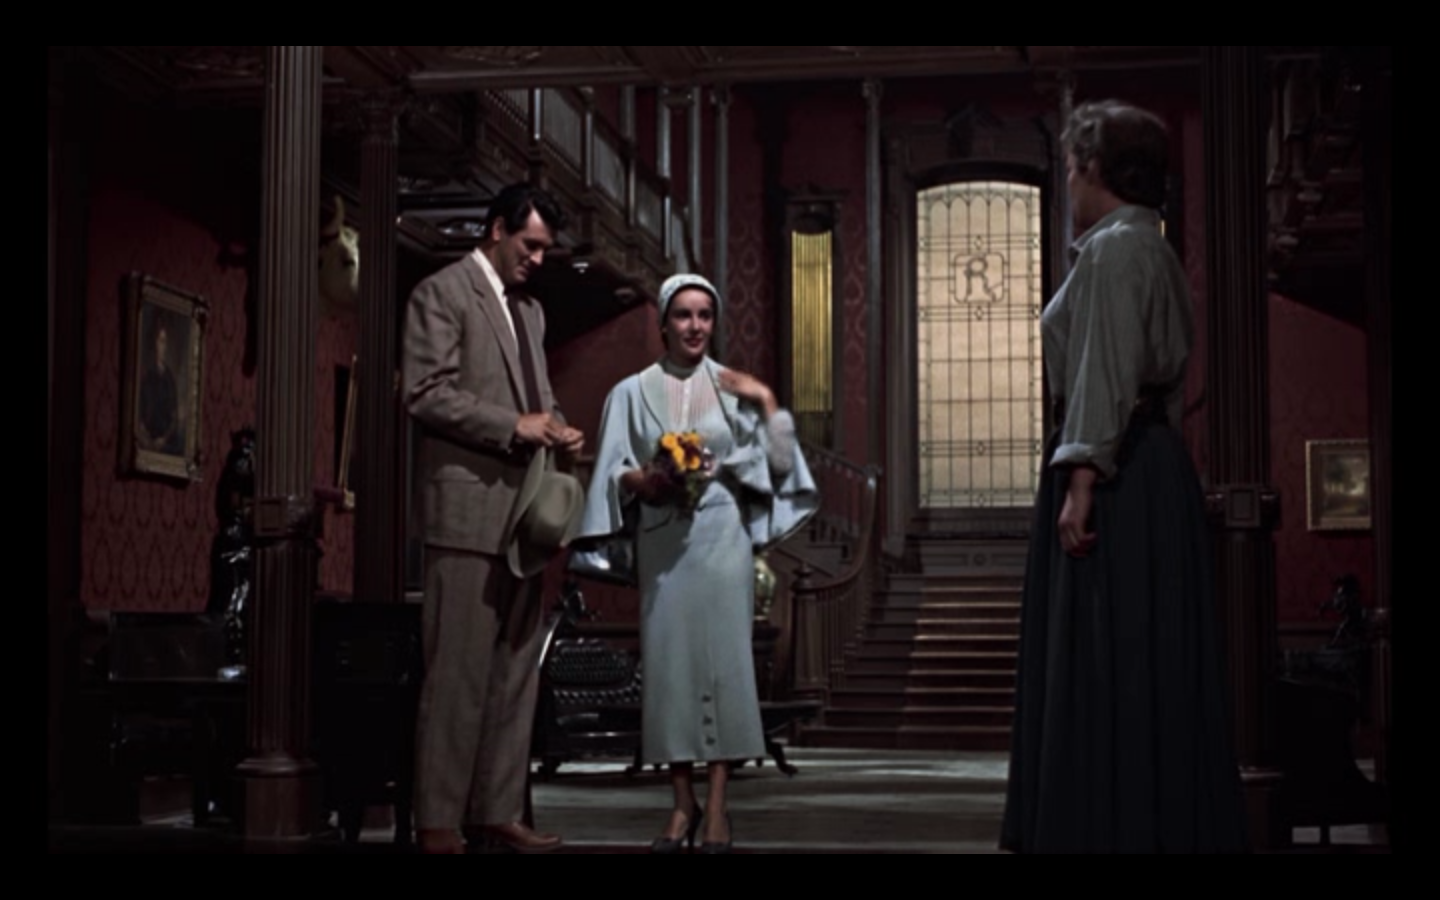 Fashion in Film: Giant (1956) - The Native Transplant